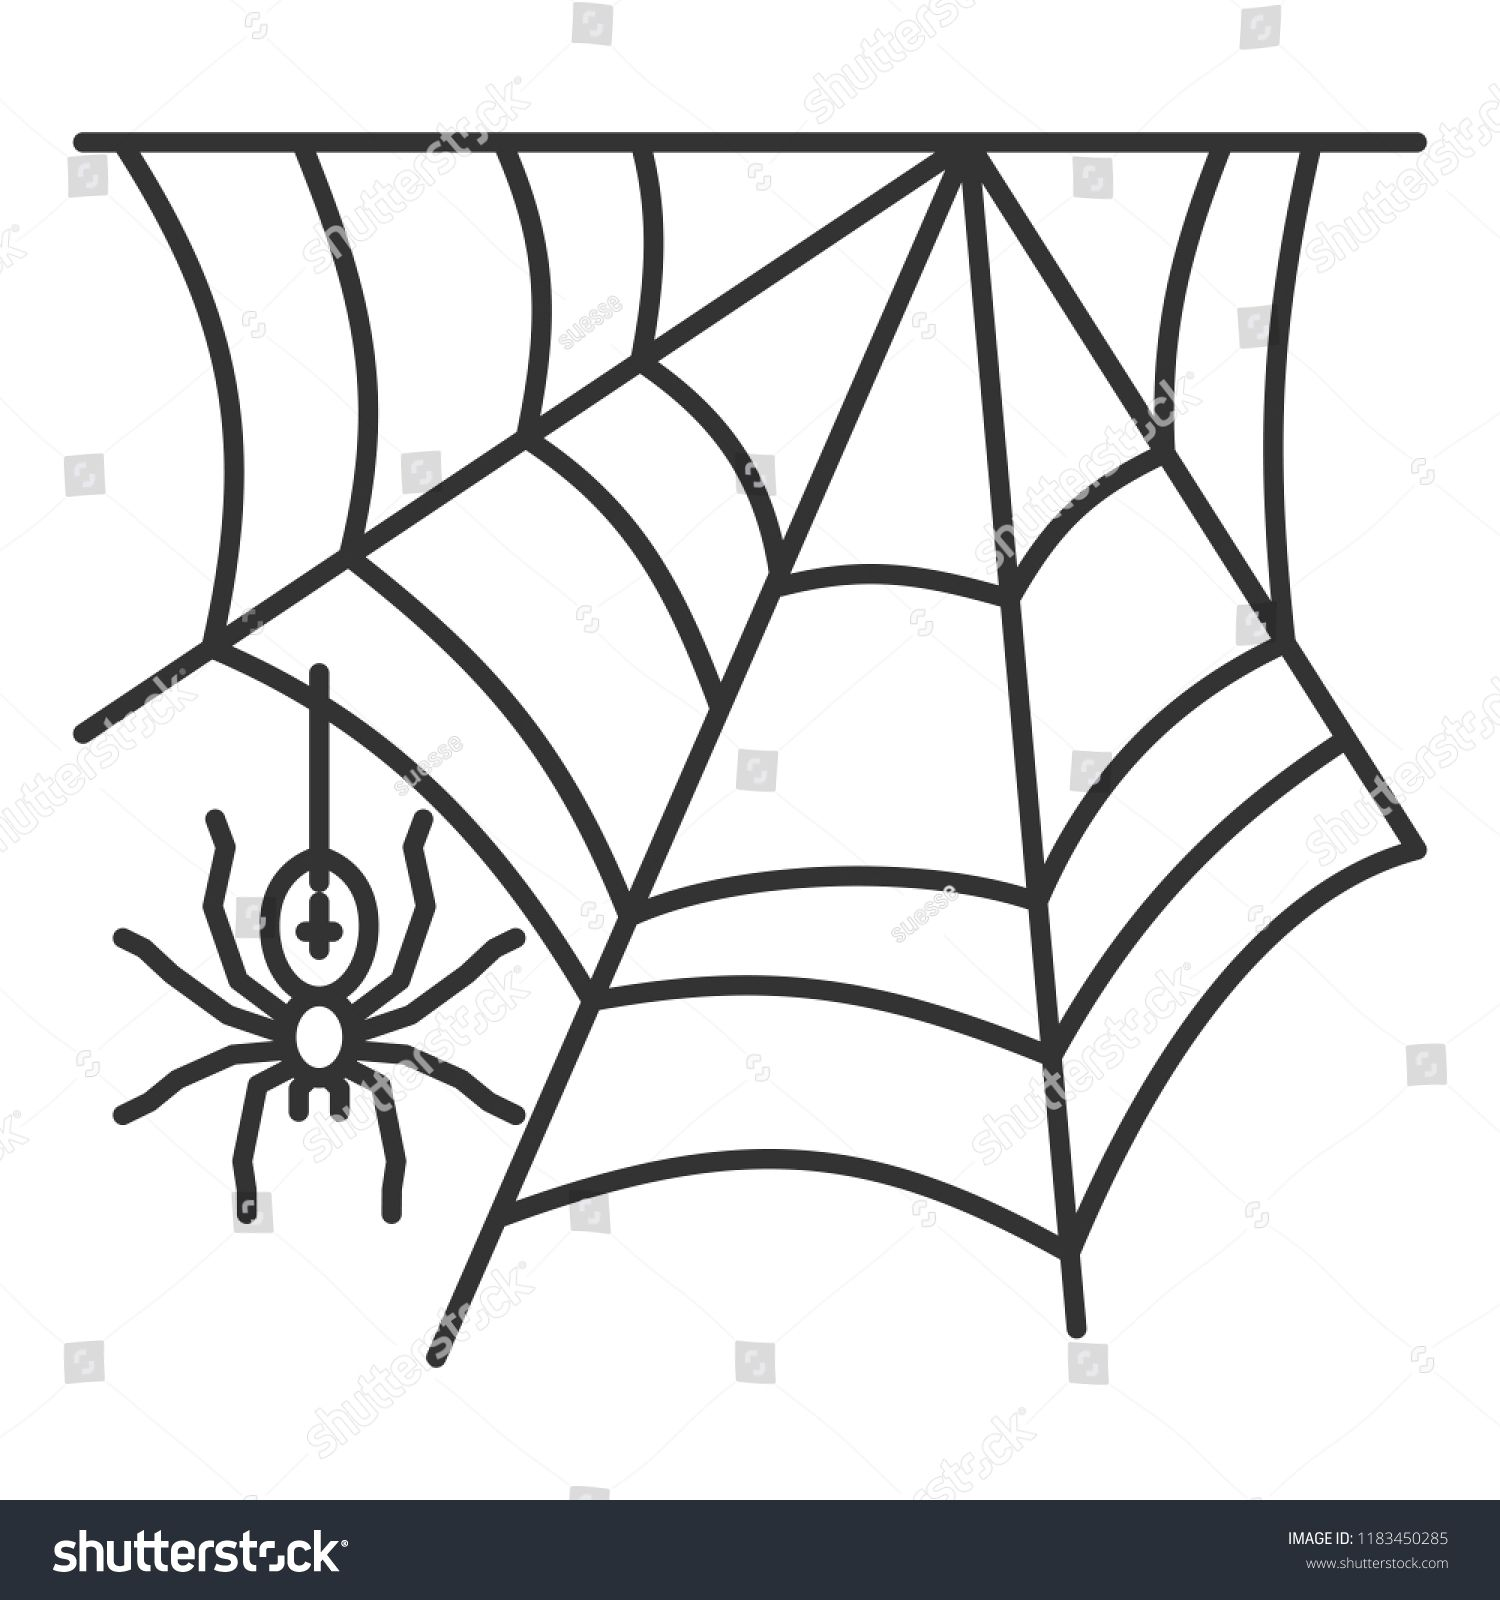 Spider web thin line icon. Cobweb vector isolated on white